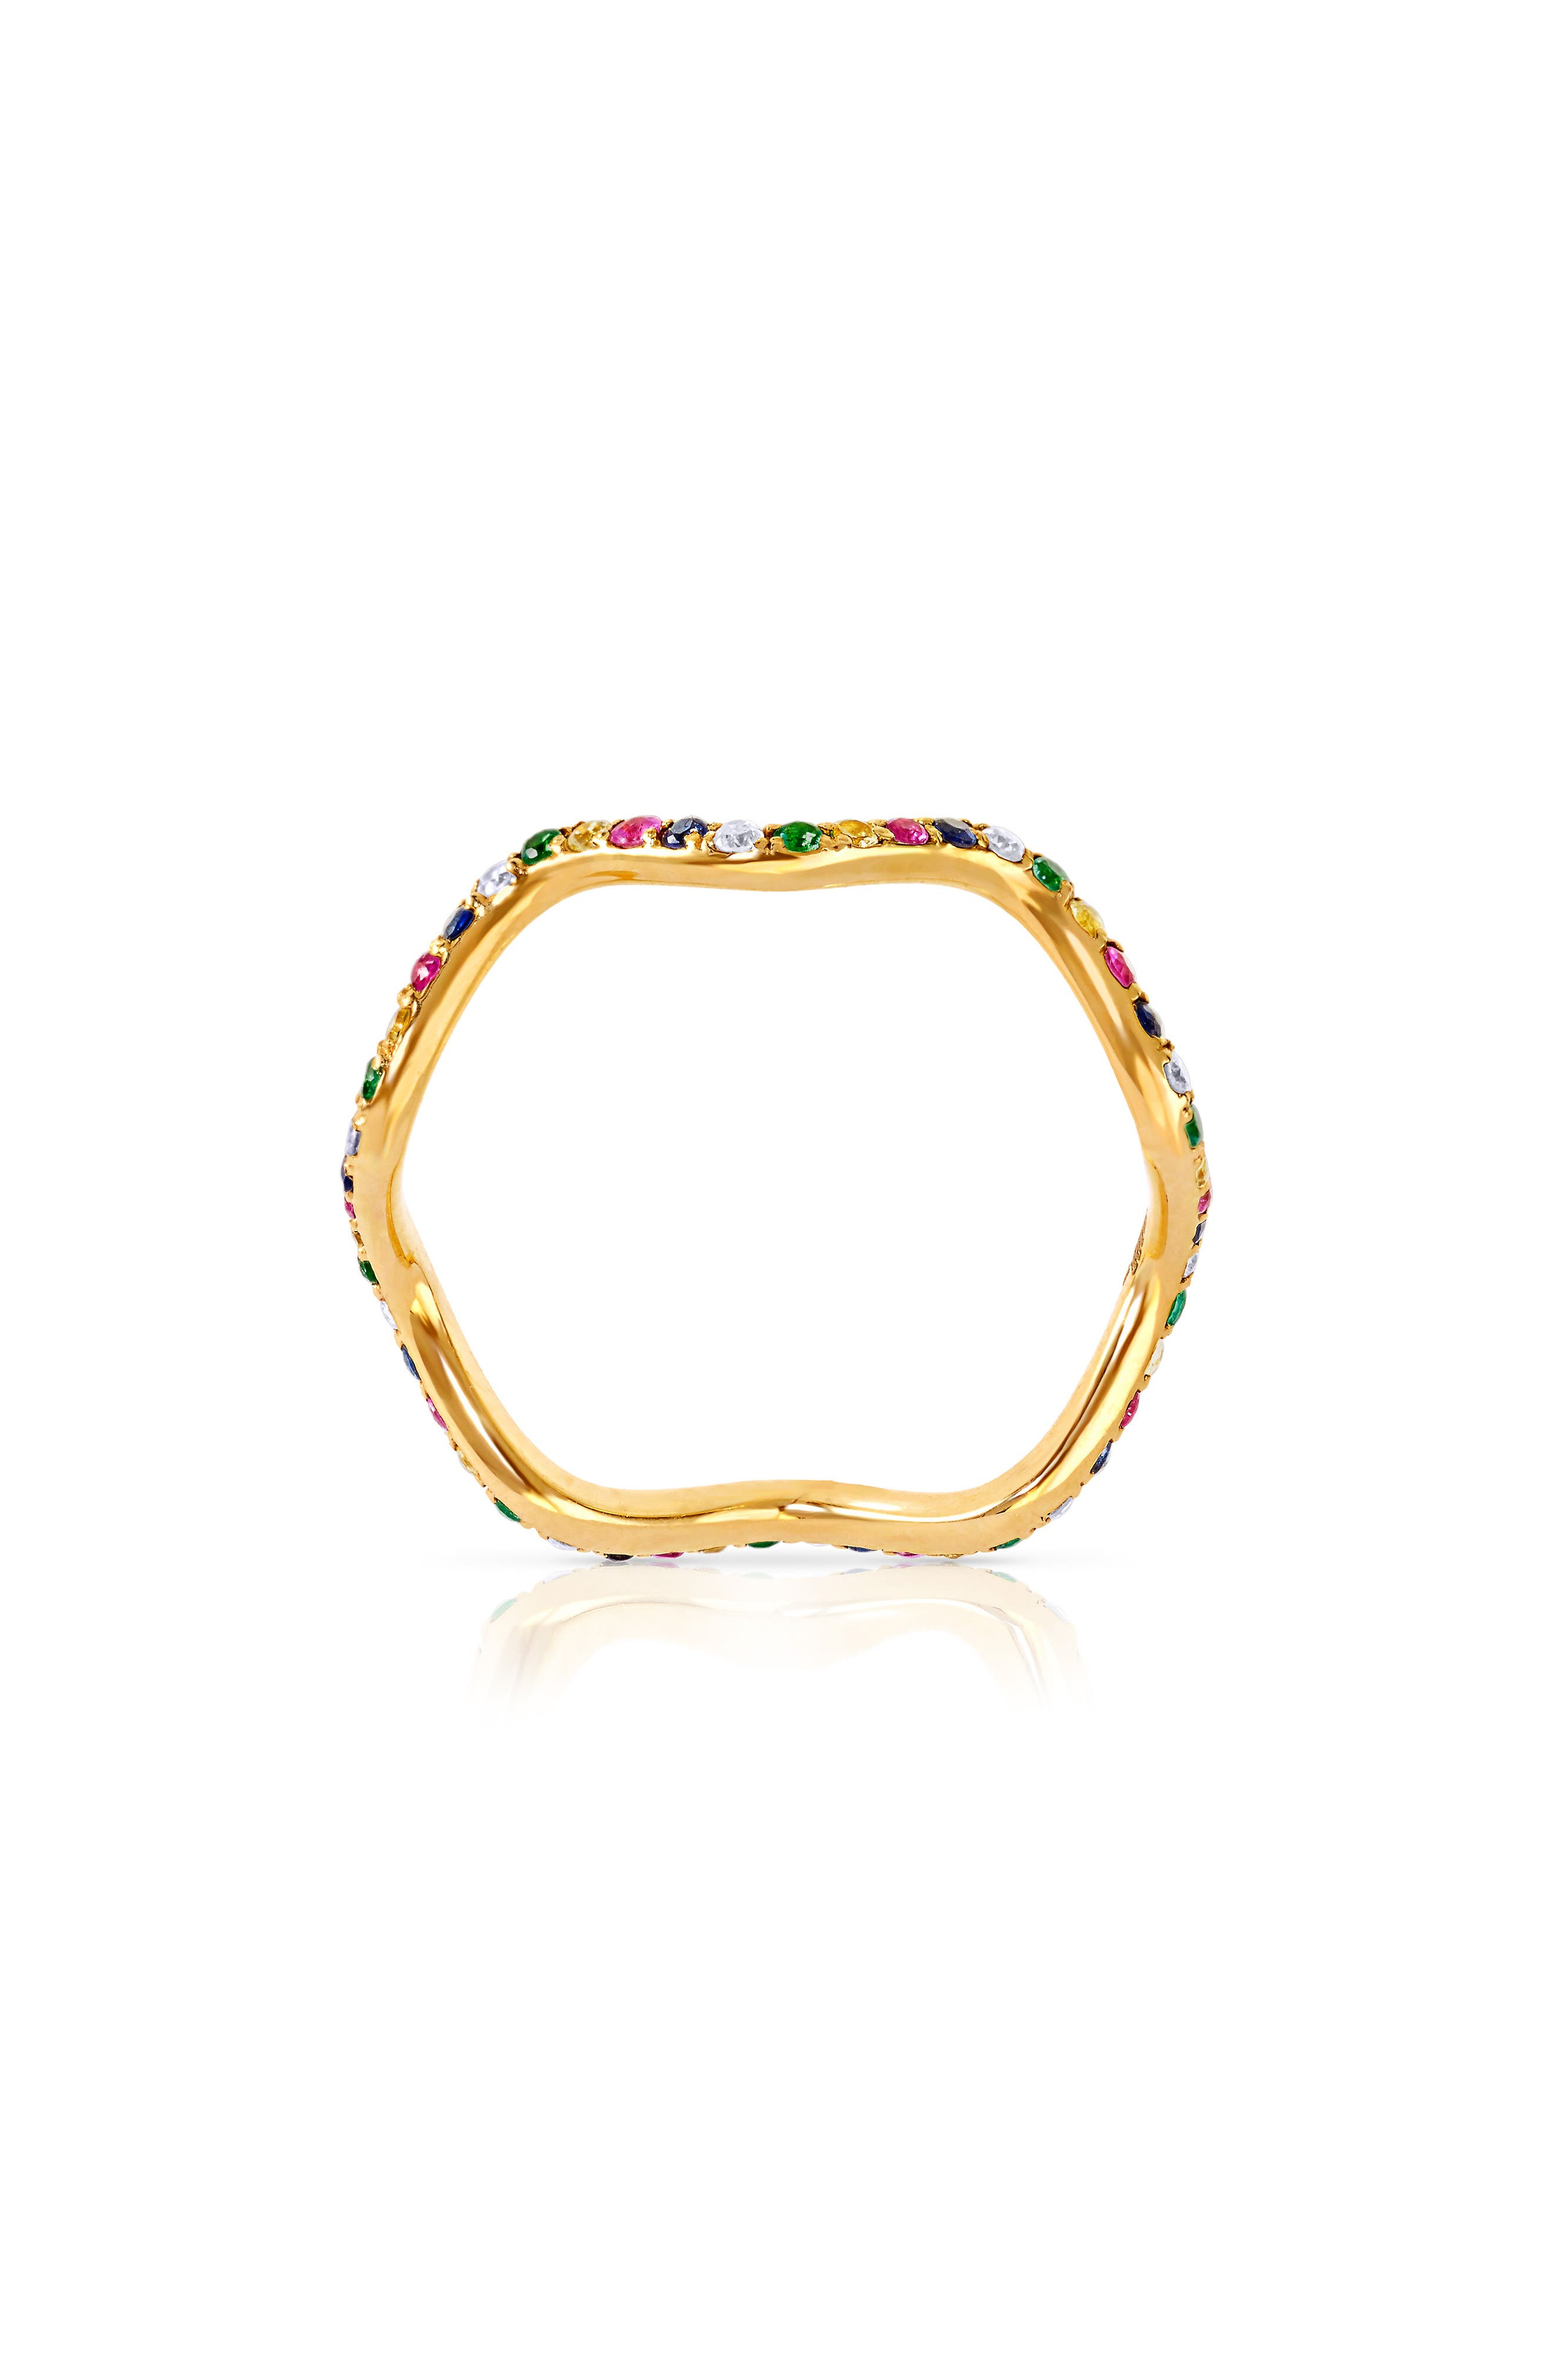 Baby Memphis Multistone Wave Band Ring,                             Main thumbnail 1, color,                             YELLOW GOLD PINK SAPPHIRE